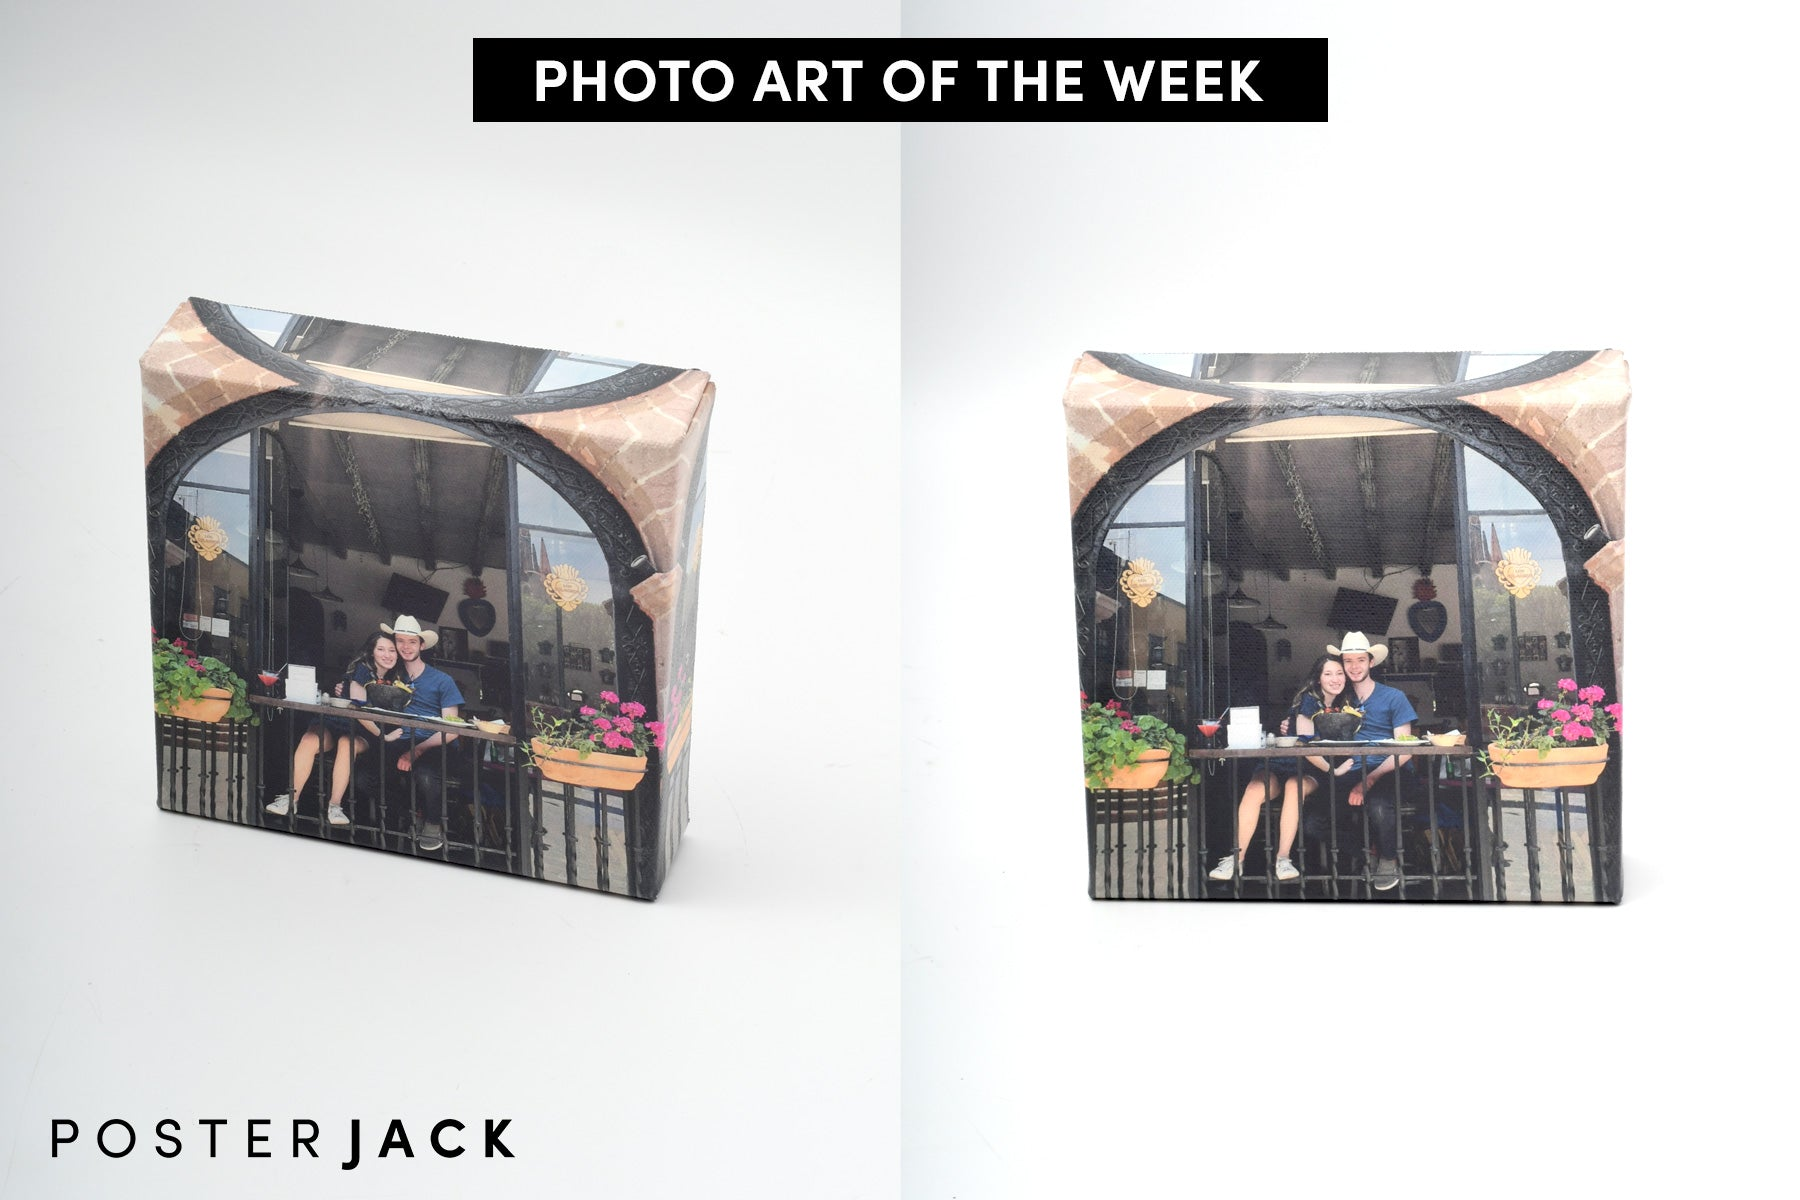 Photo Art of the Week Picture of Couple in Love Printed on a Canvas Mini by Posterjack